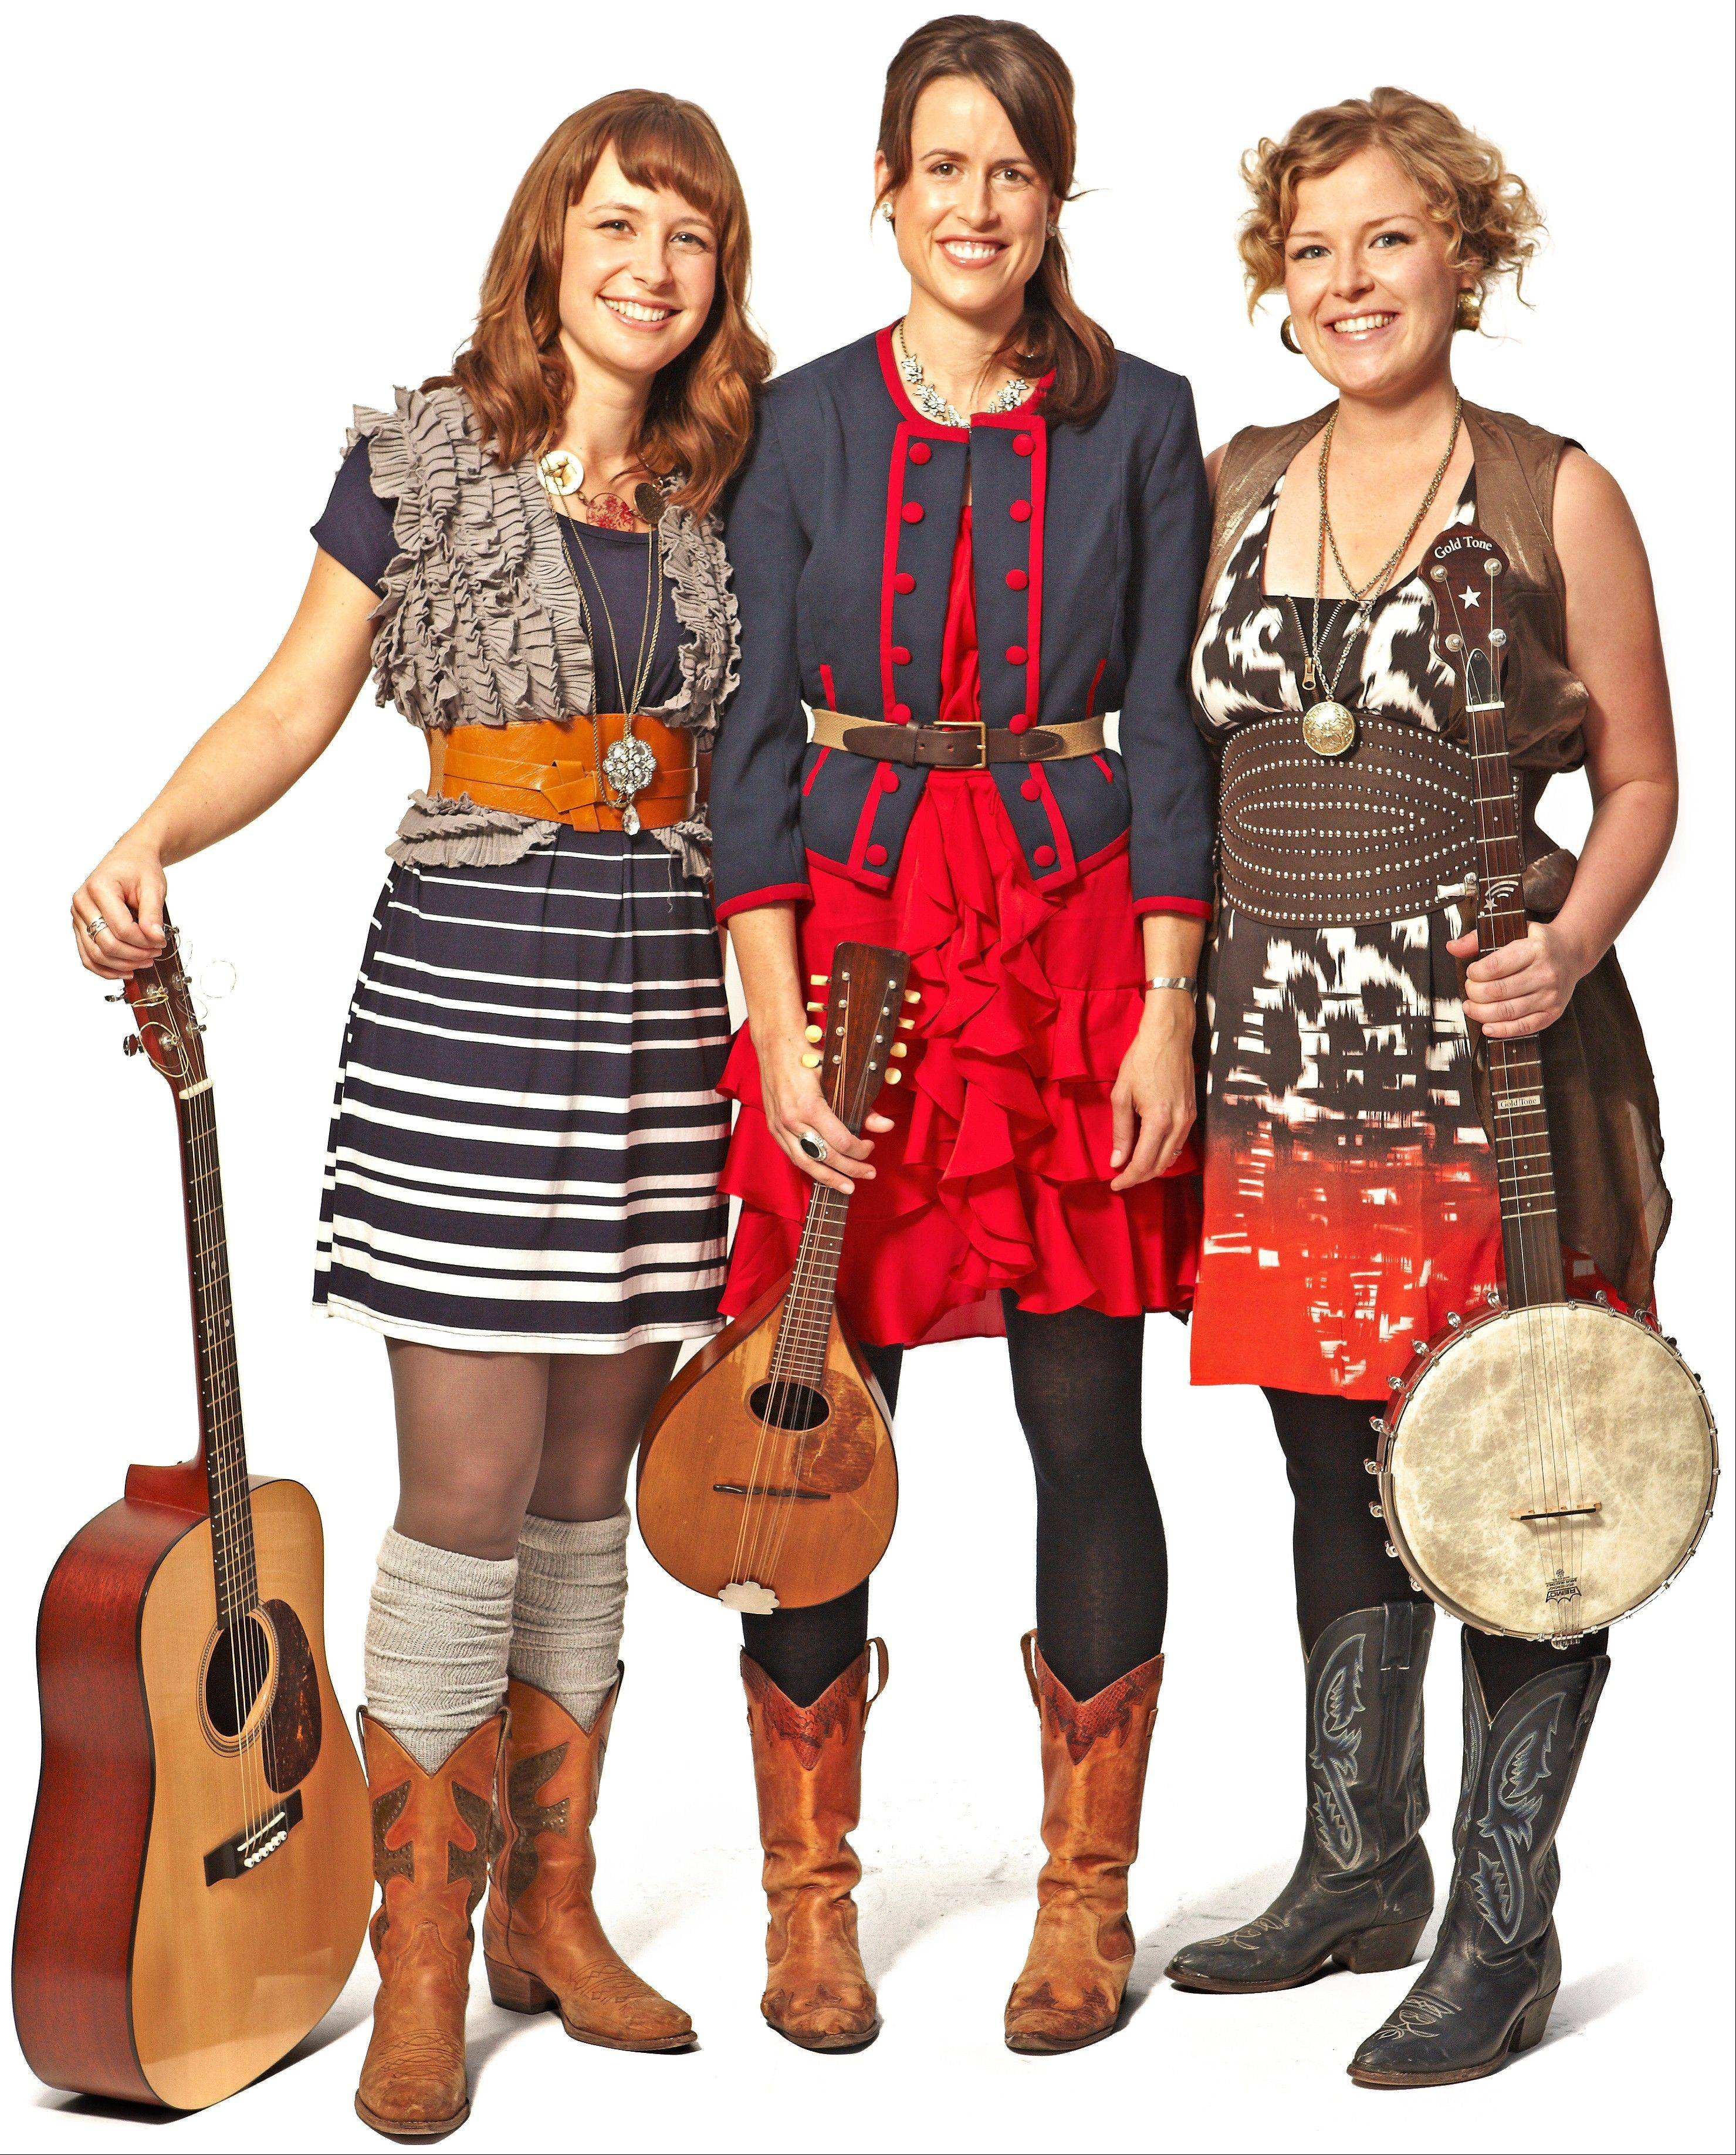 Canadian folk trio The Good Lovelies appear at Ramsey Auditorium in Wilson Hall at the Fermi National Accelerator Laboratory in Batavia on Saturday, Dec. 8.